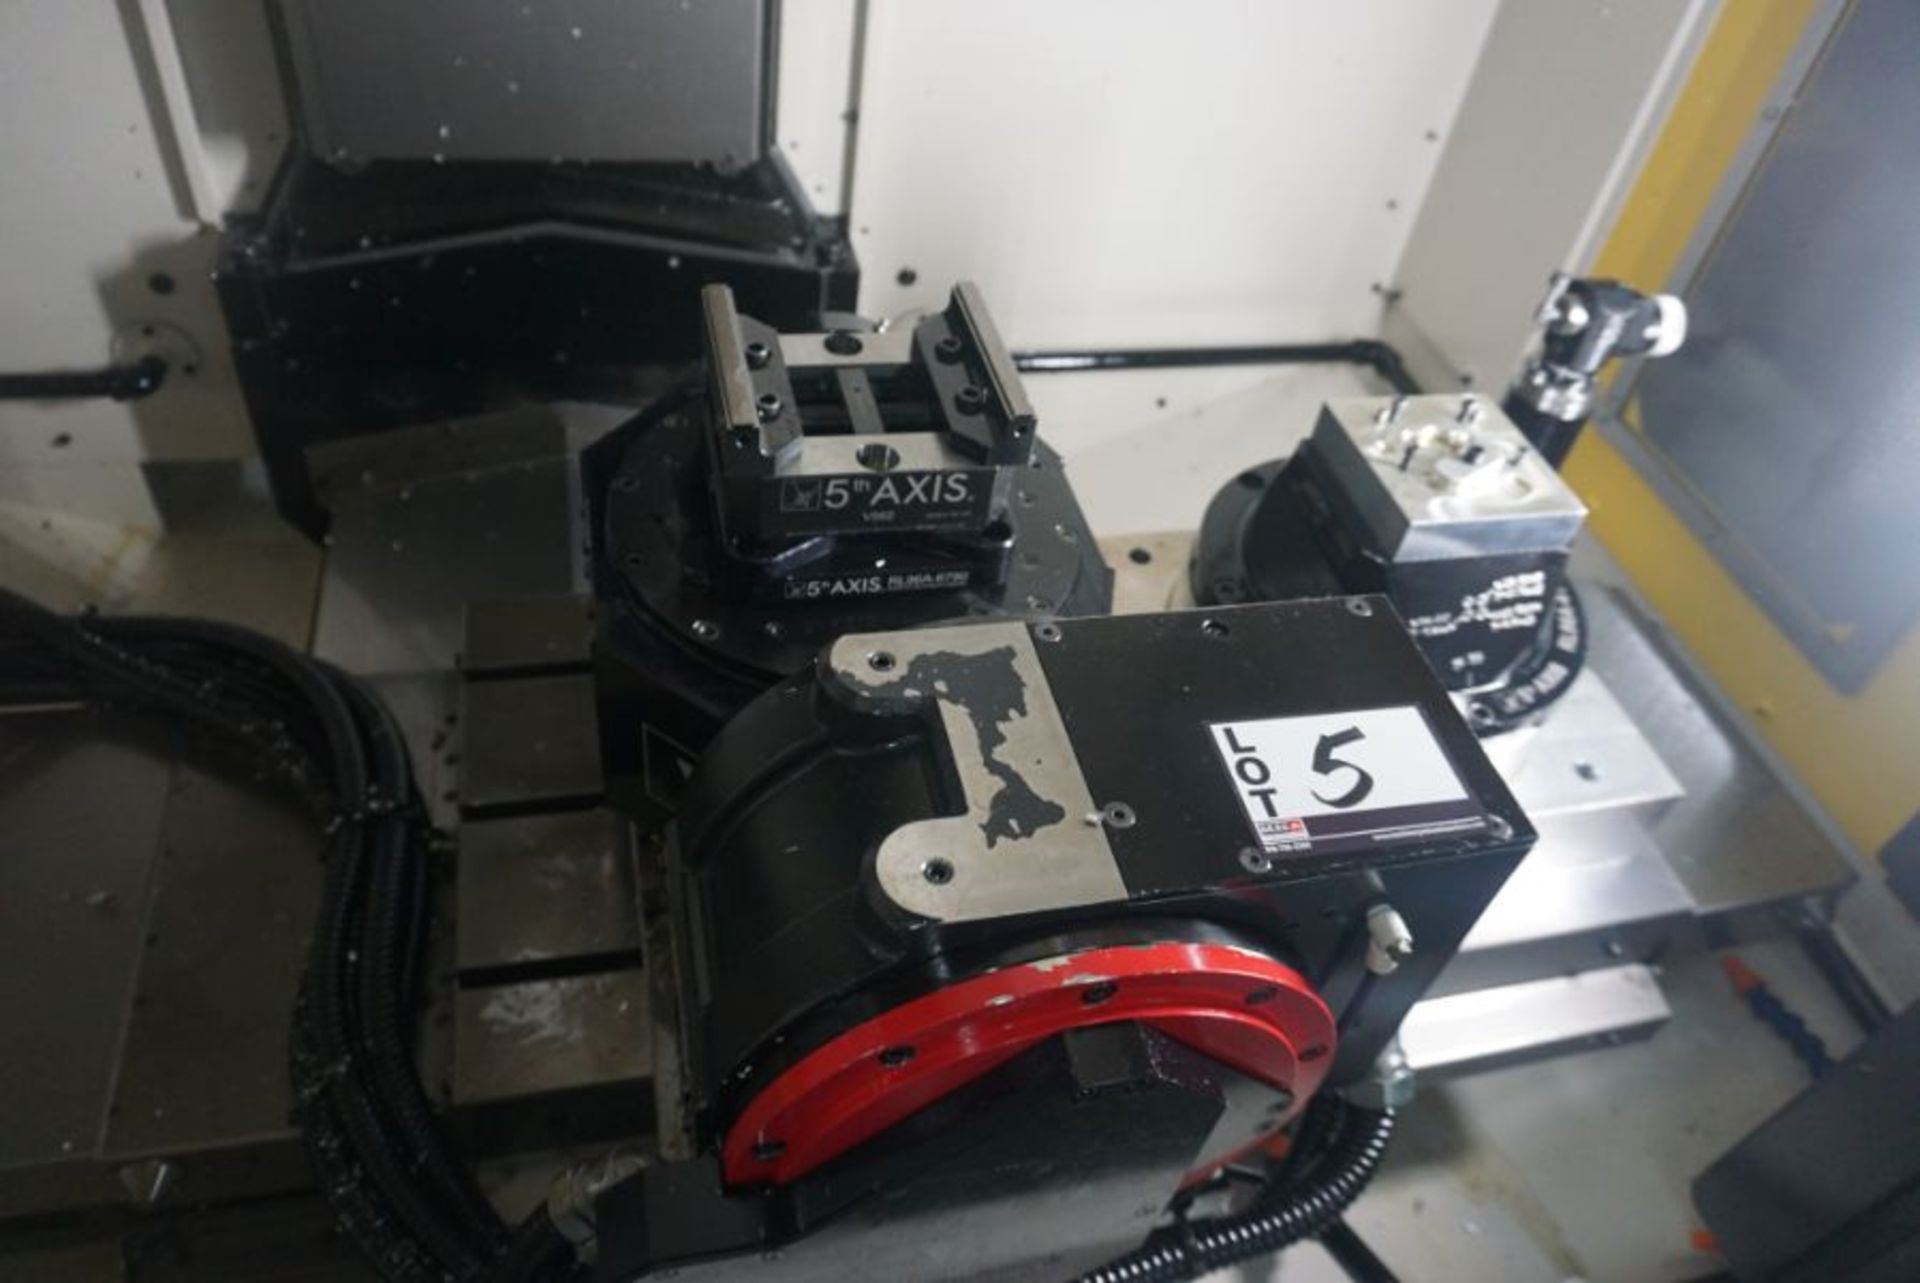 Haberle Fanuc DDRiB 5 Axis Rotary Table, s/n P183DXN18, New 2018